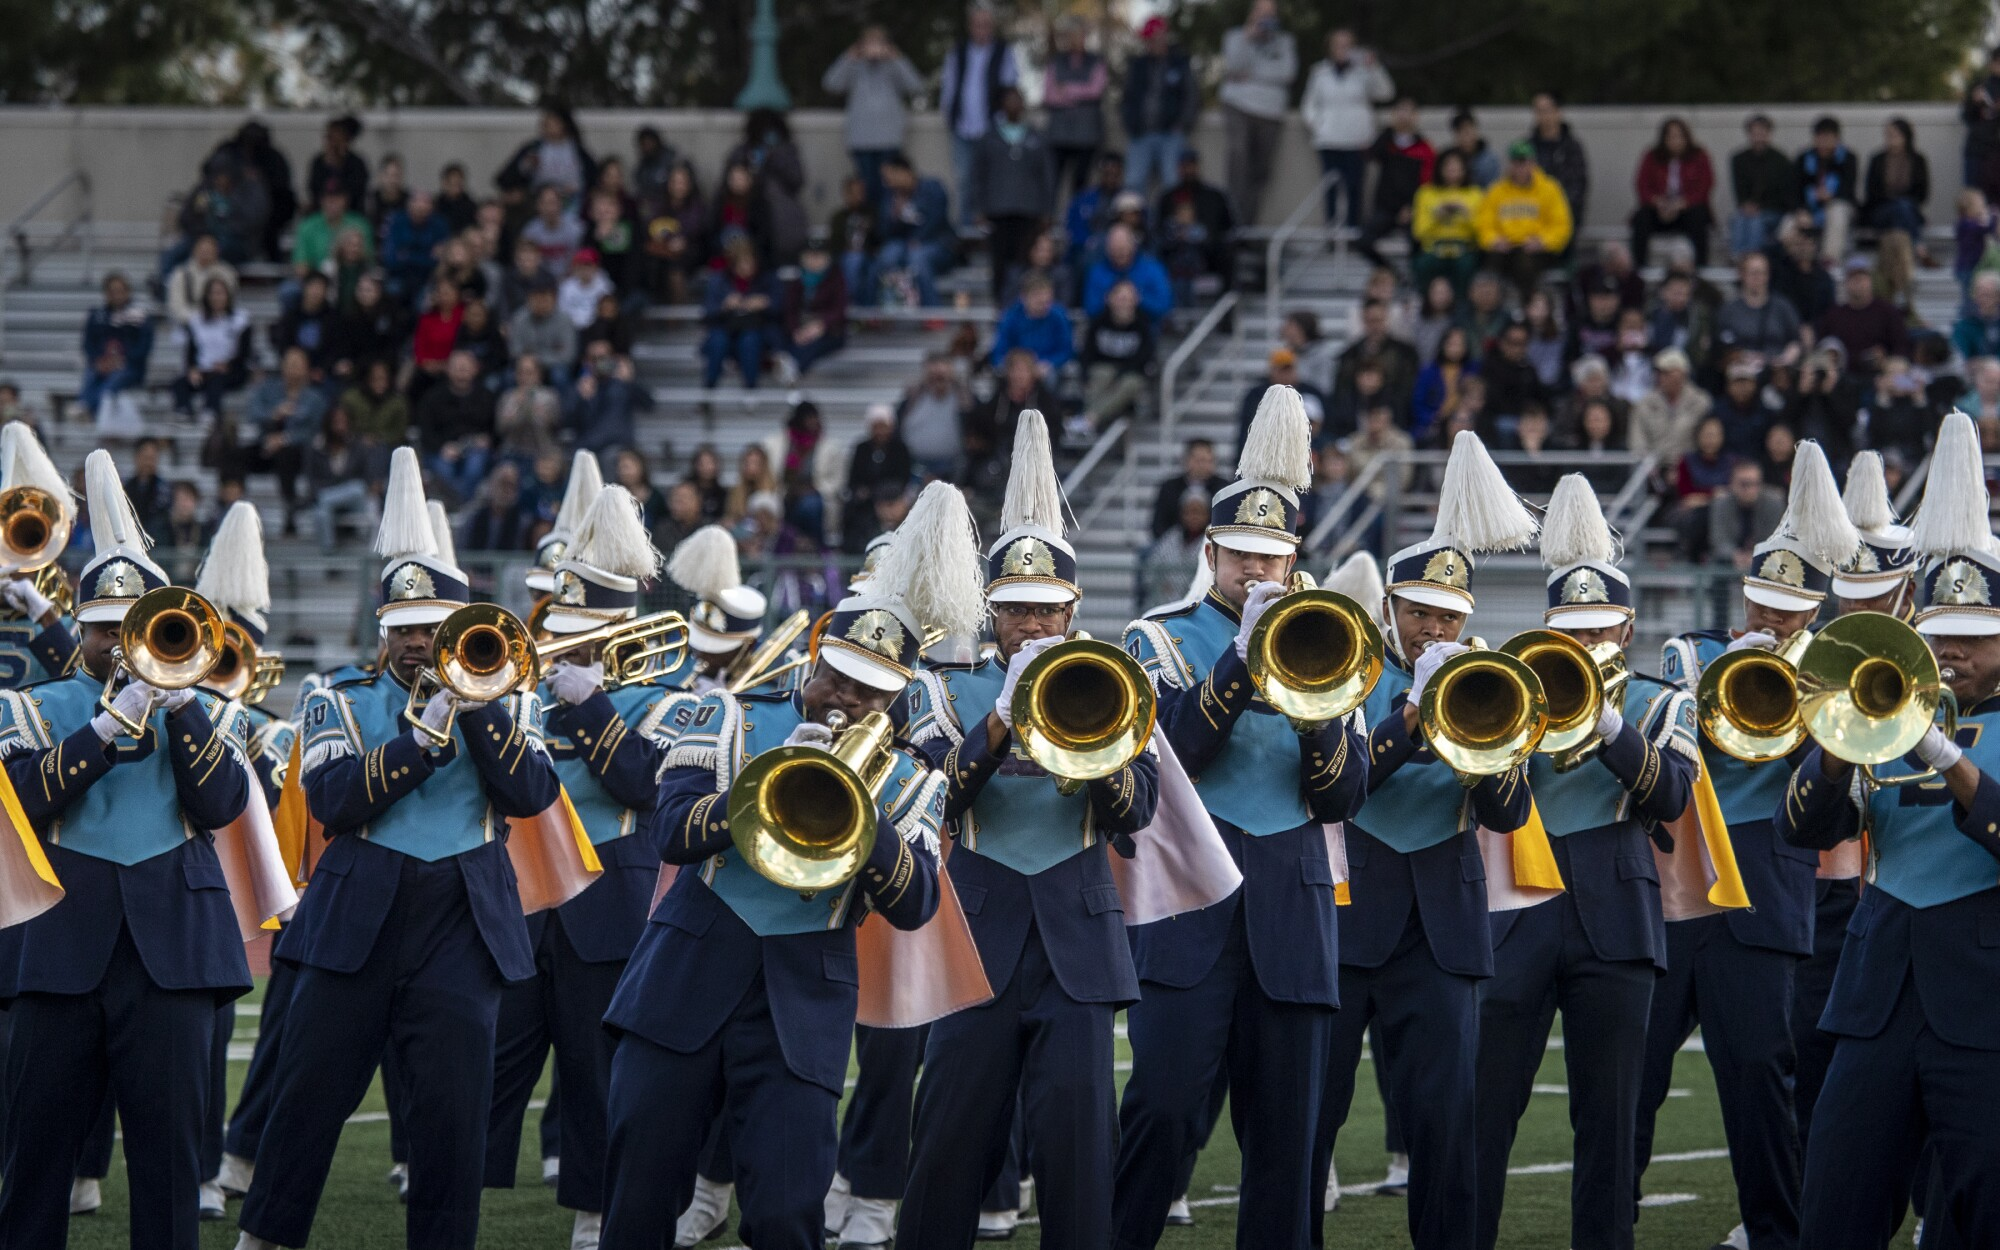 """The Southern University Band, known as the """"Human Jukebox,"""" performs Monday during Bandfest at Pasadena City College's Robinson Stadium."""